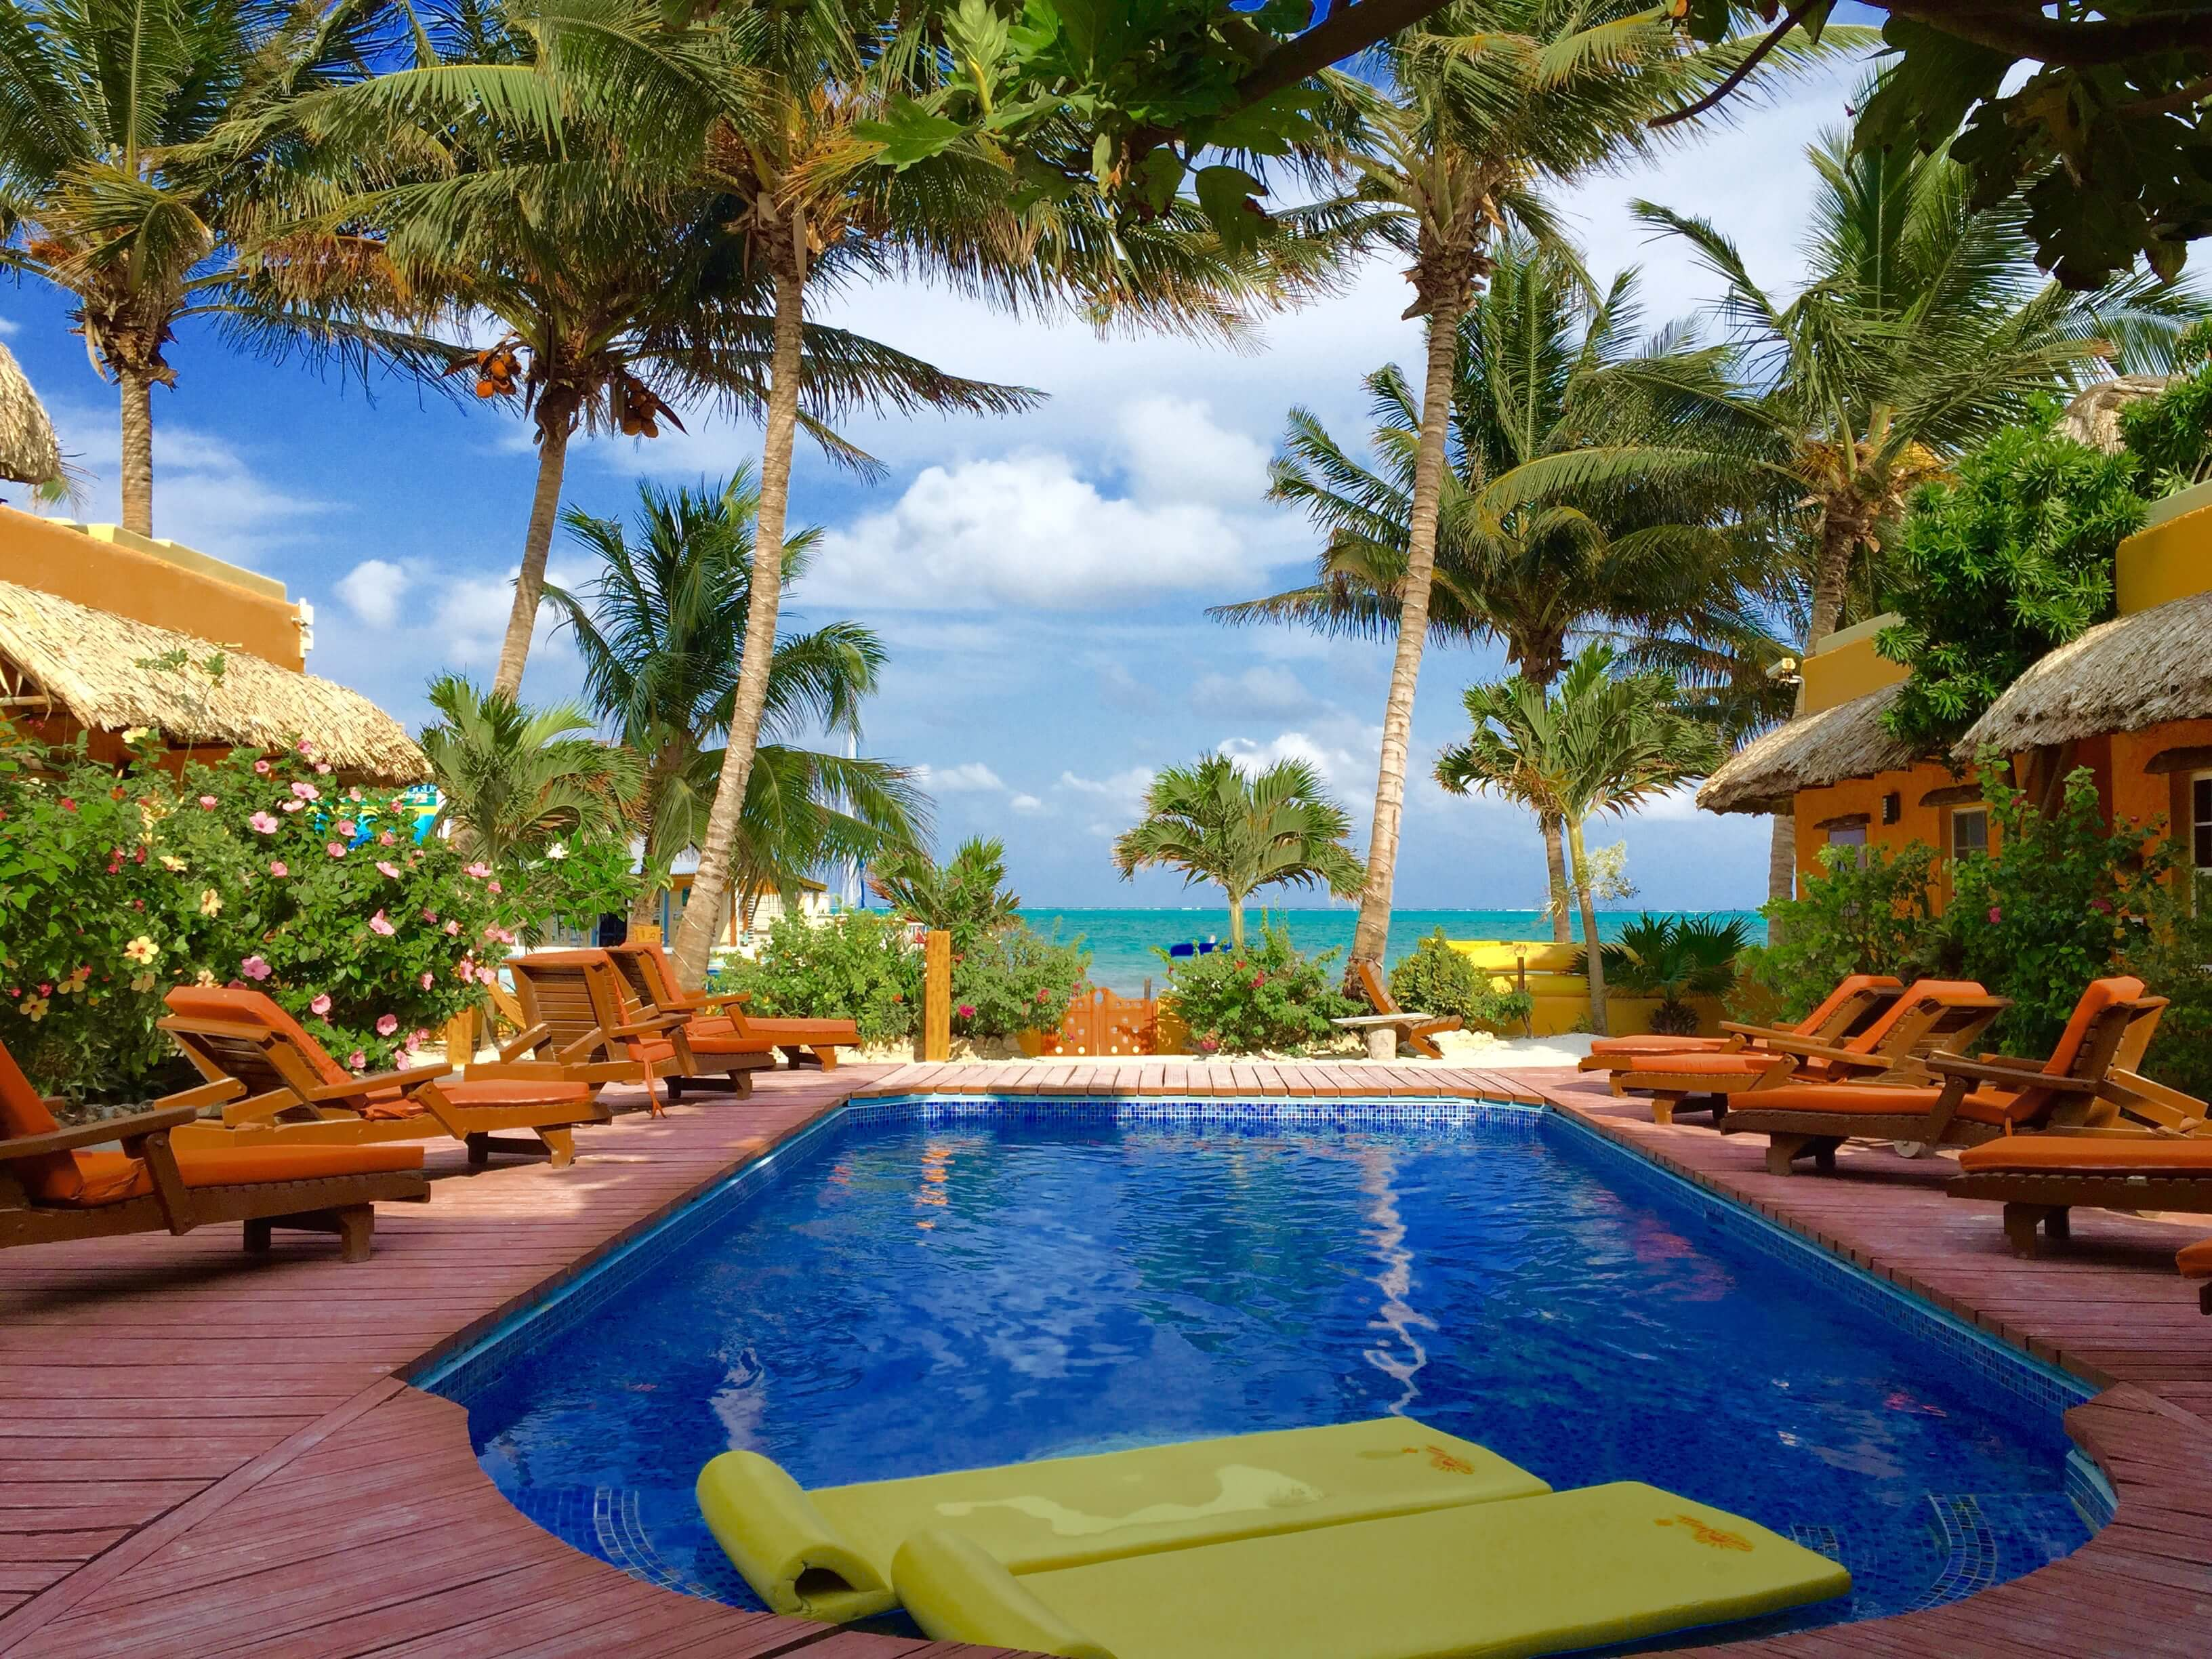 blog-you-better-belize-it-hotel-pool